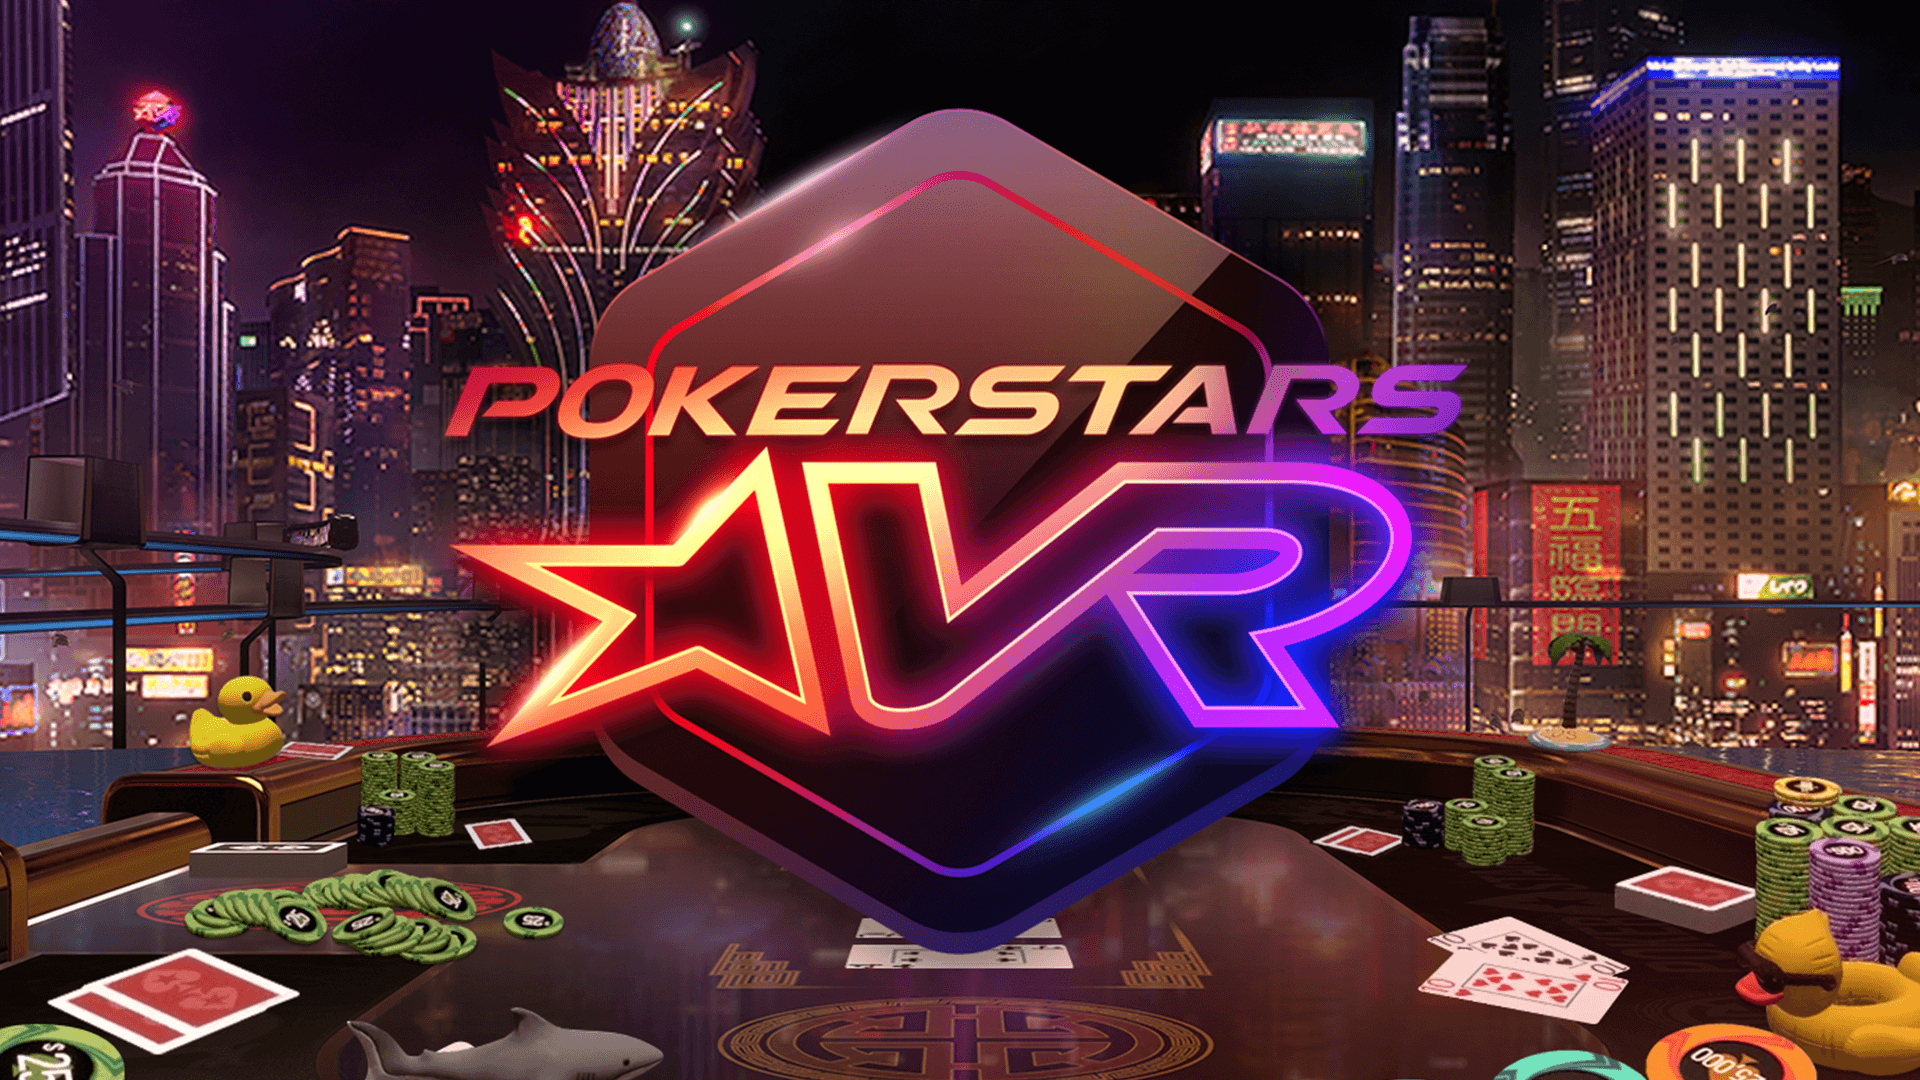 pokerstars vr video game wallpaper 73546